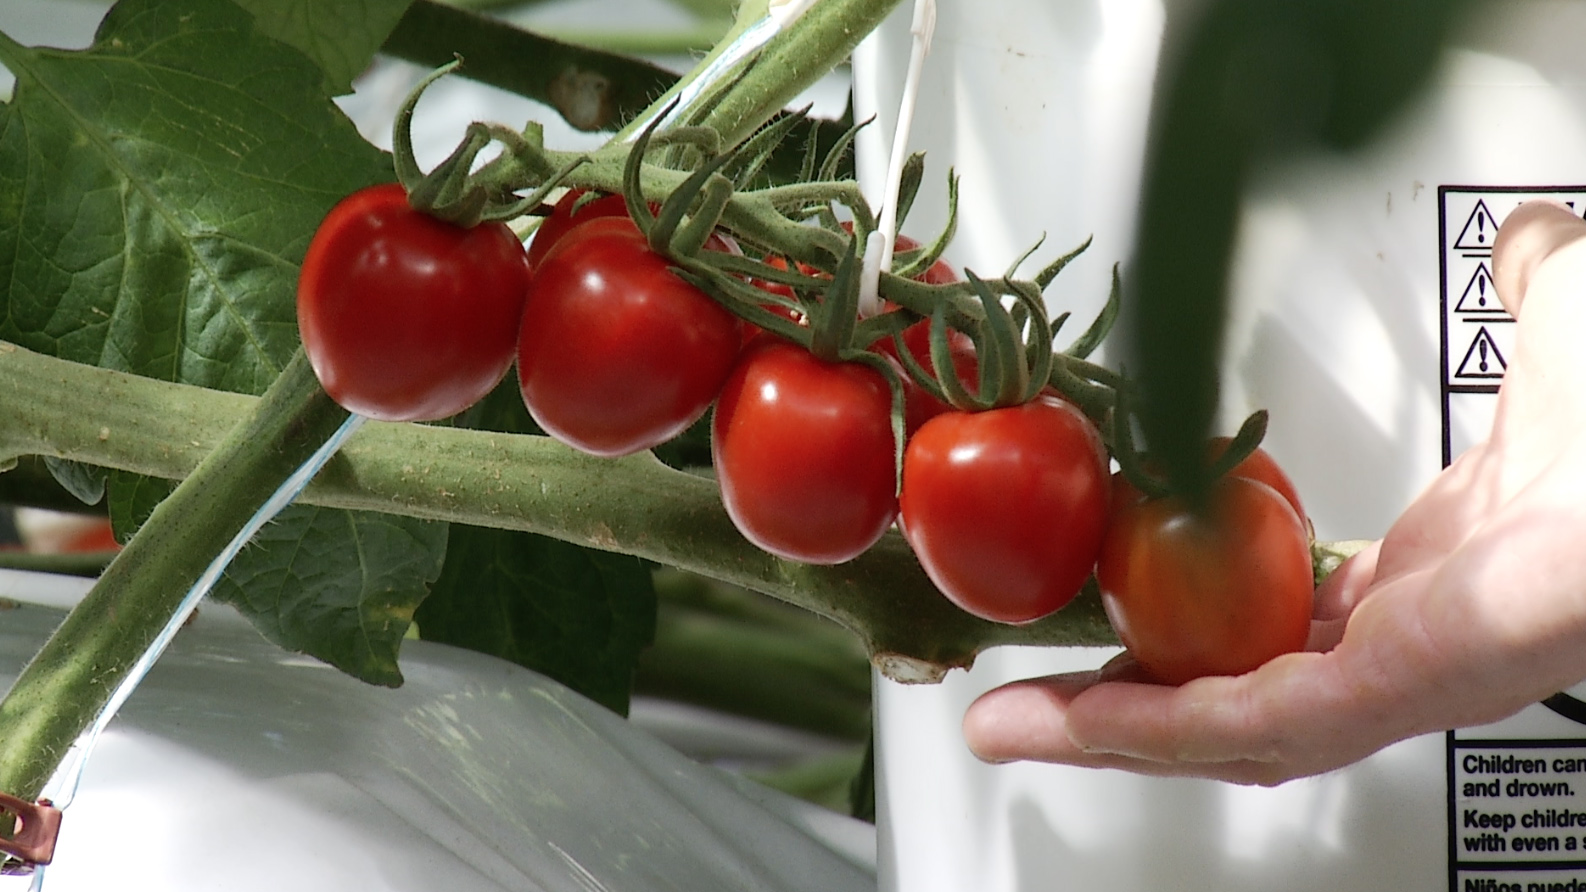 Strawberry tomatoes grow on the vines of a greenhouse run by students at the University of Arizona's Controlled Environment Agriculture Center.